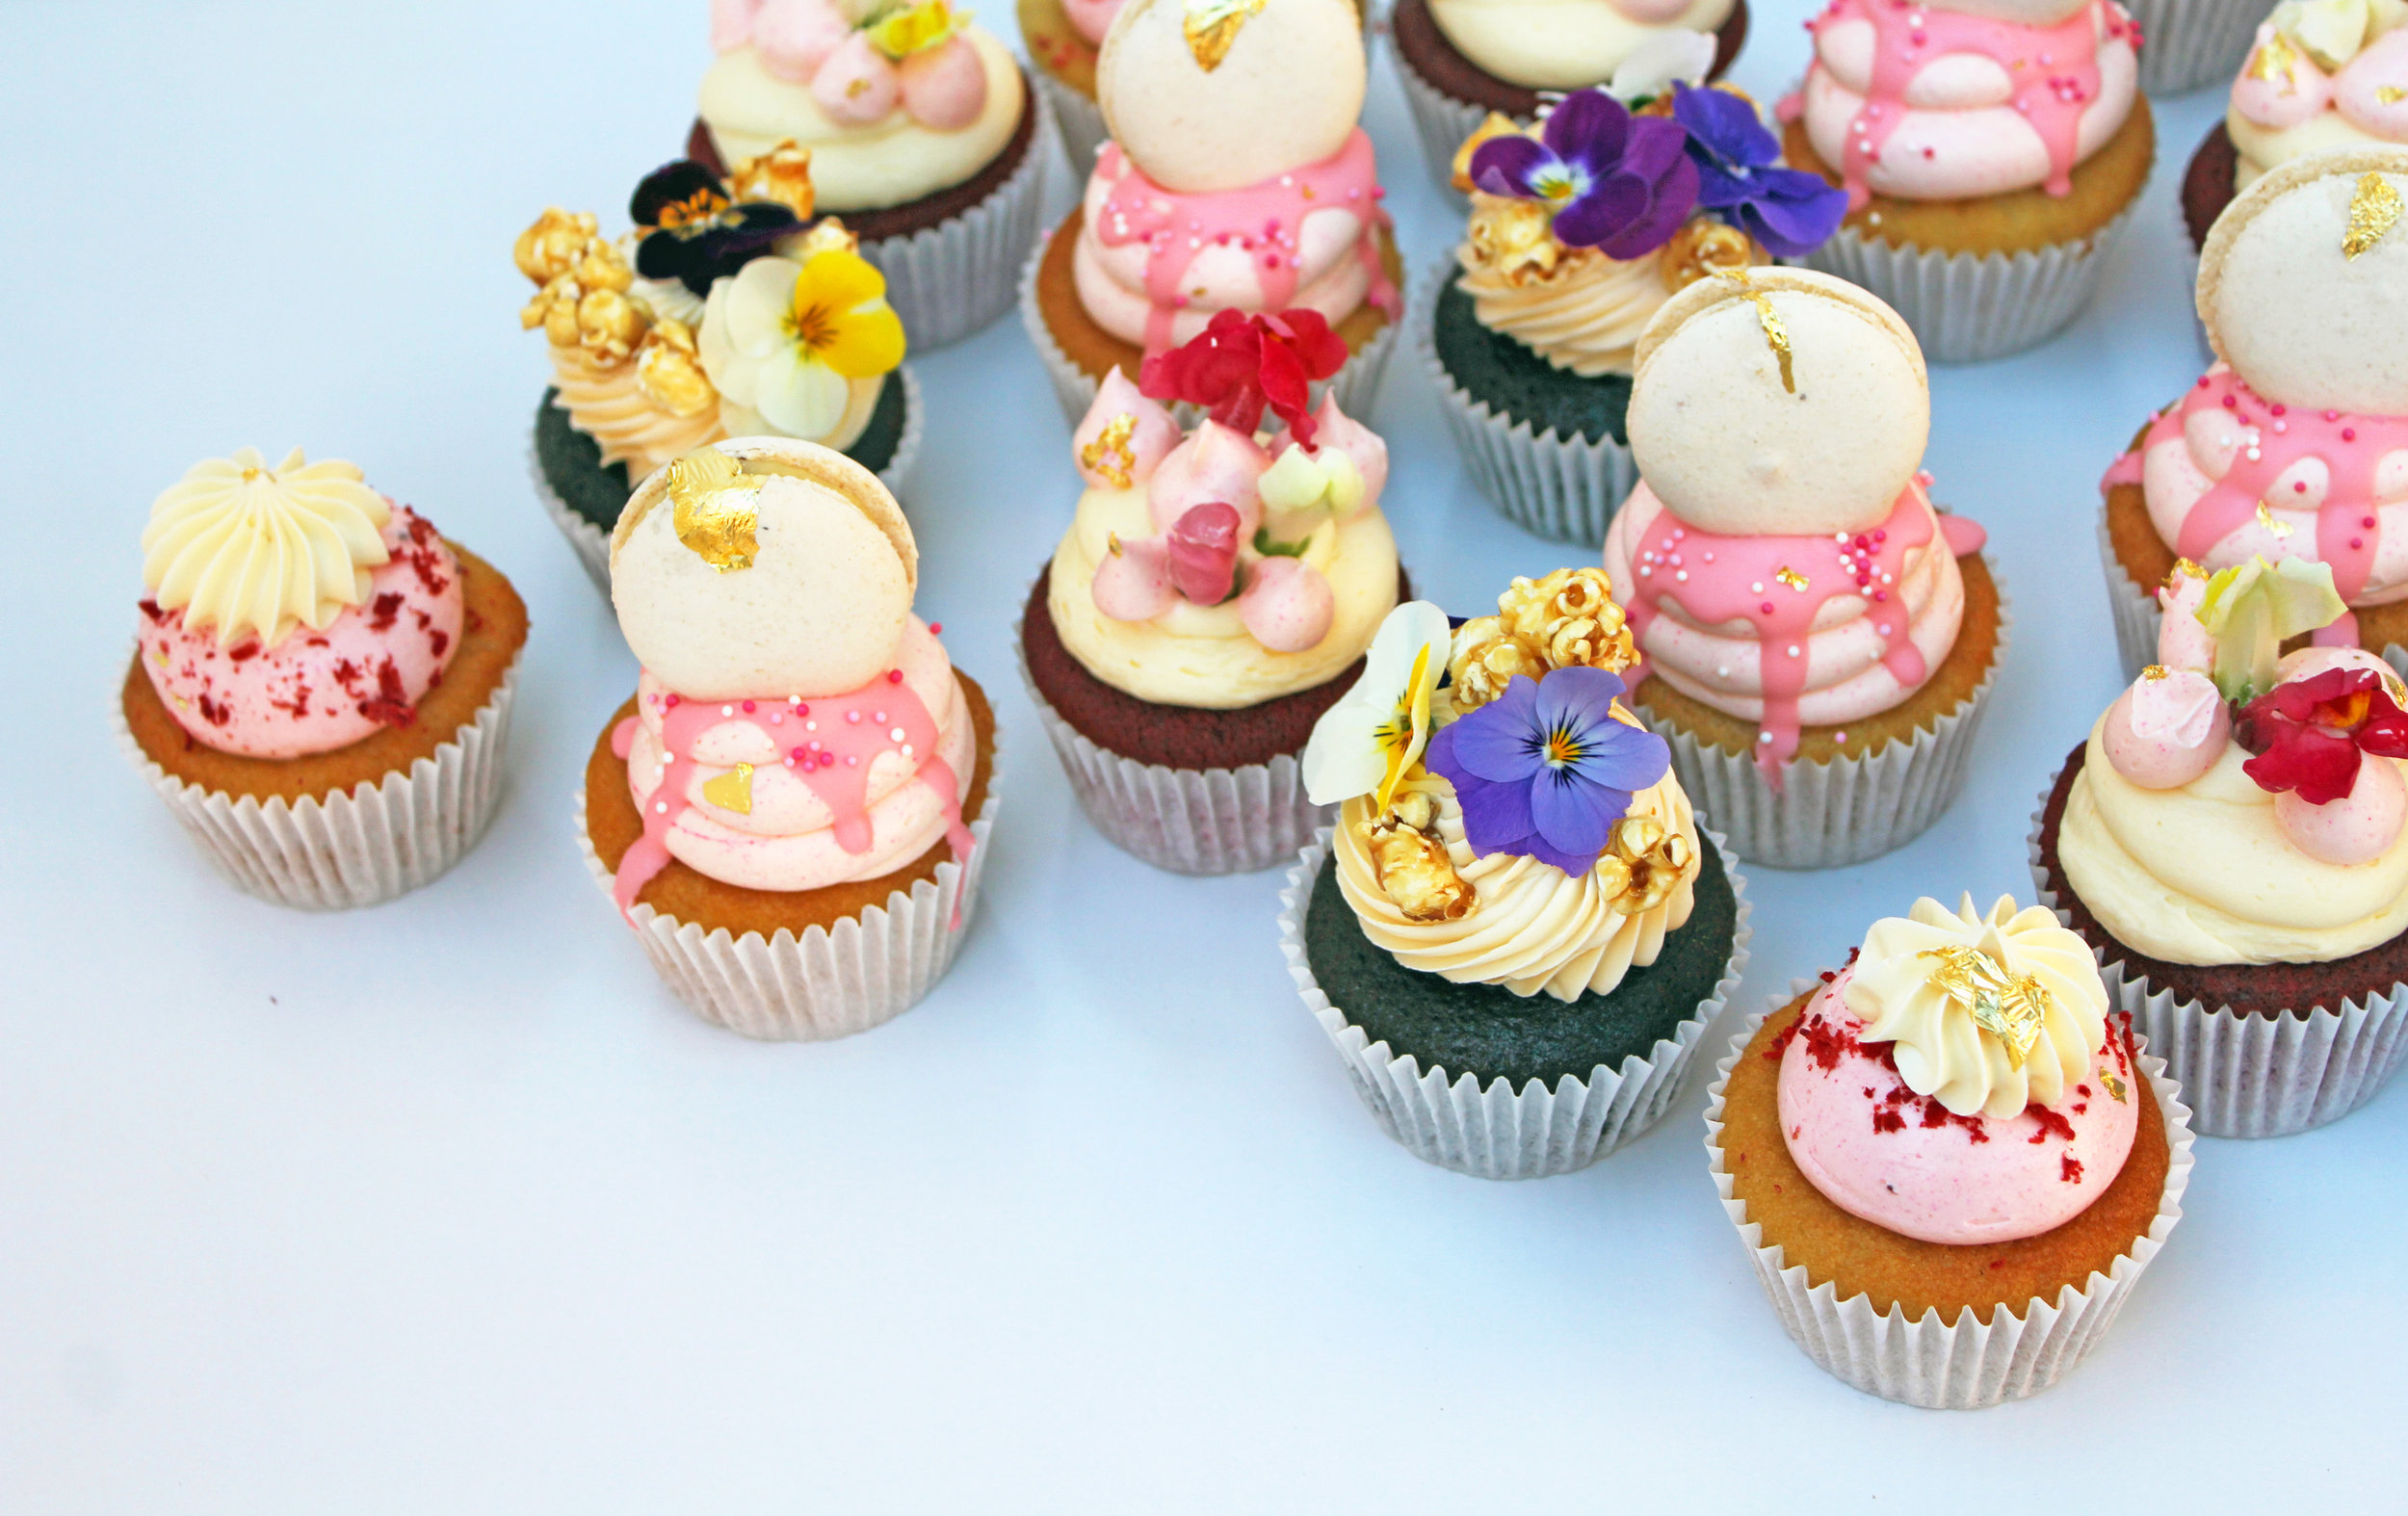 EXCLUSIVE CUPCAKES